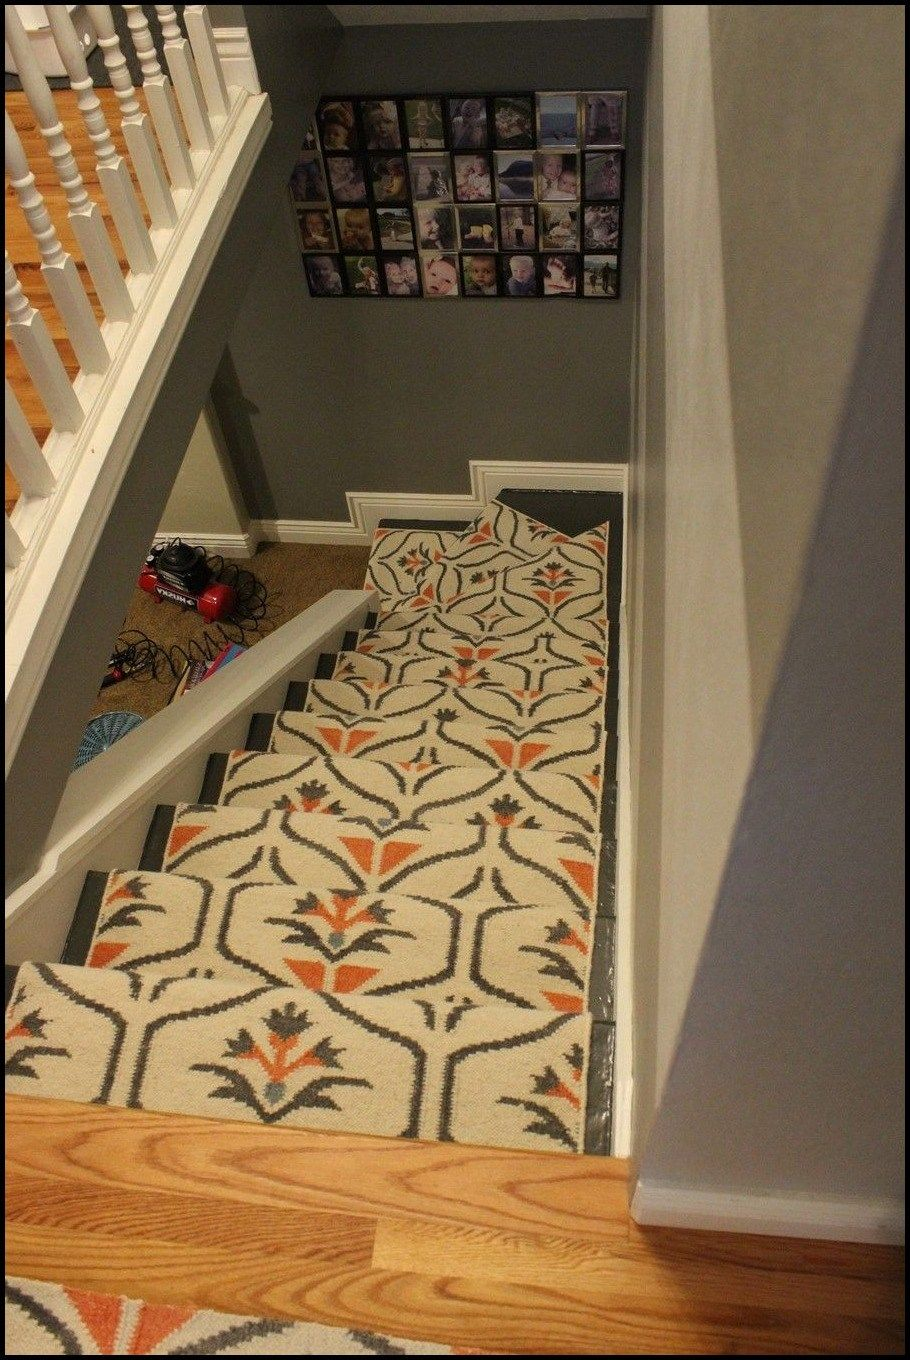 How Much Does It Cost To Install Carpet Runner On Stairs Flooring Ideas Tag